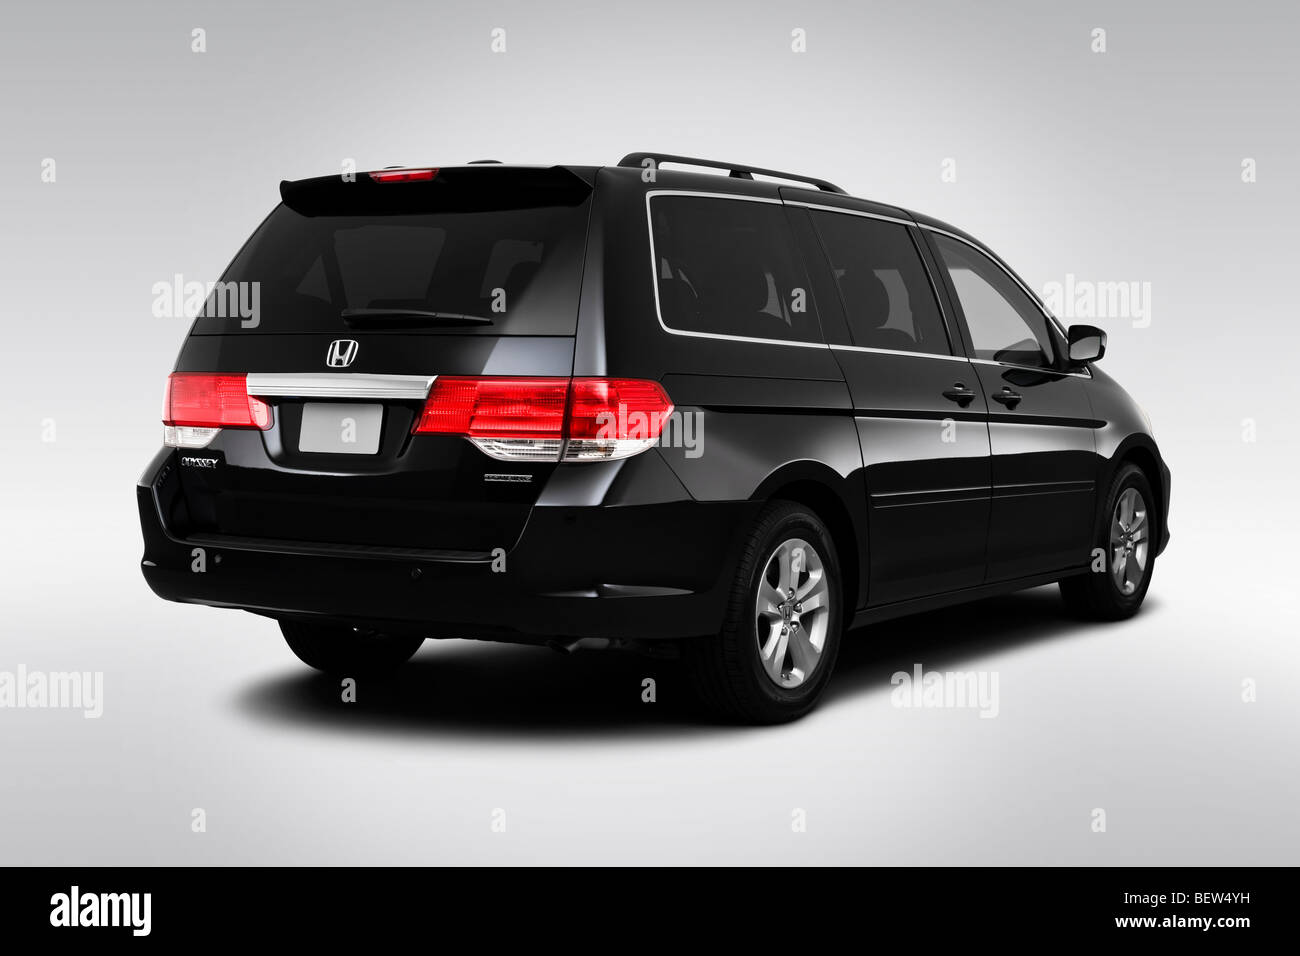 2010 Honda Odyssey Touring in Black  Rear angle view Stock Photo